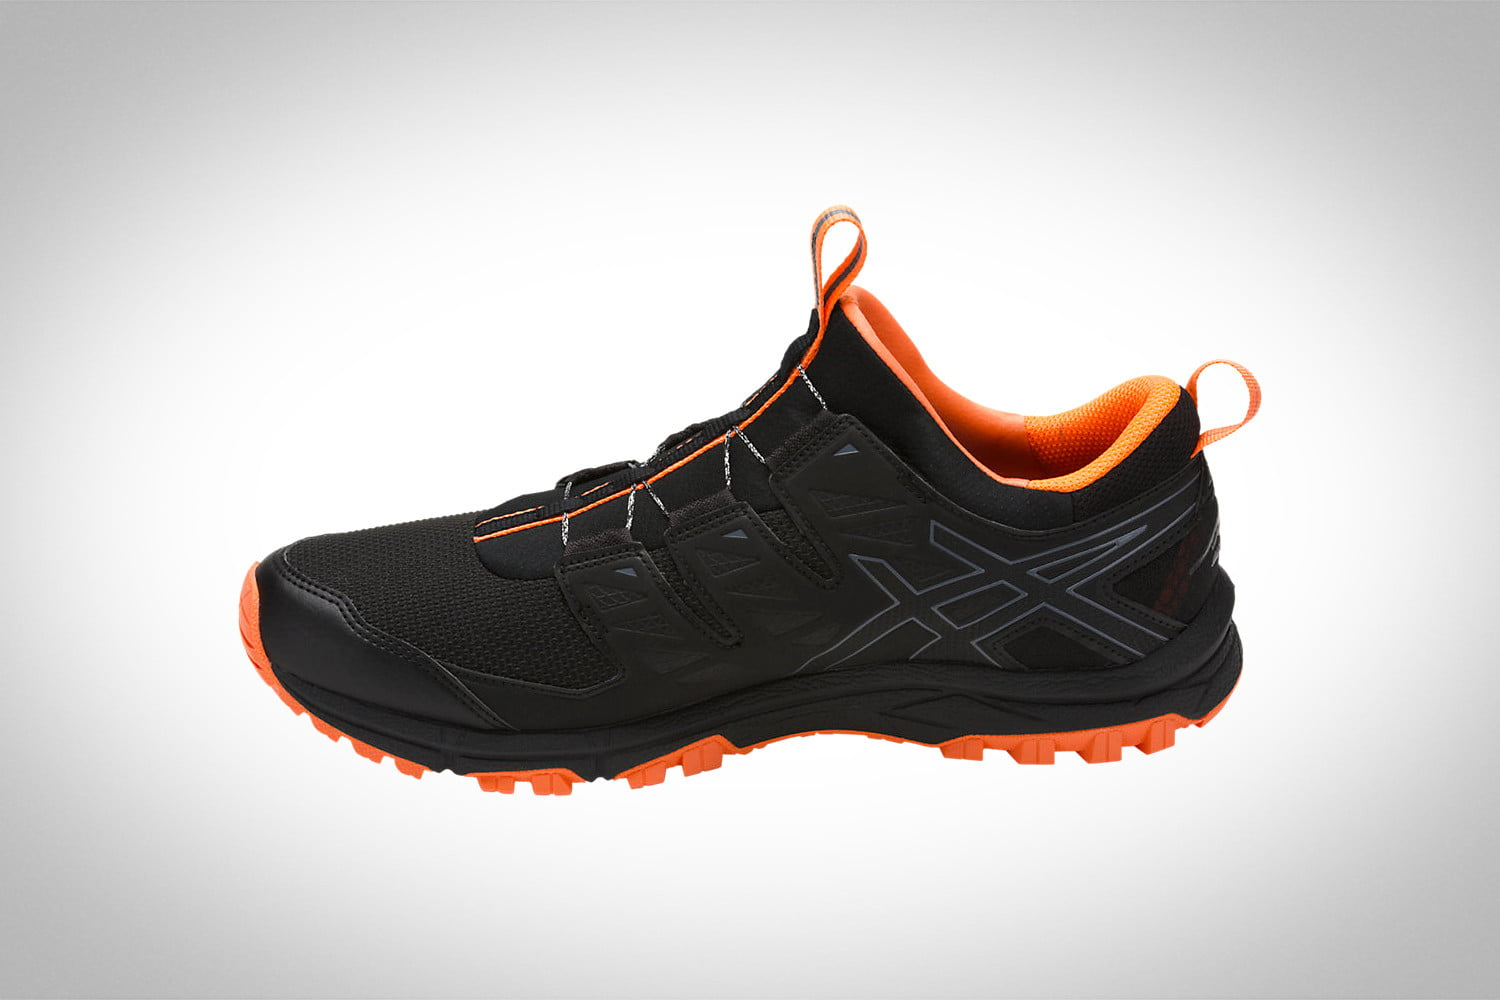 3cd59b6d9d434 Asics Create New Trail Running Shoes With Boa Closure System ...